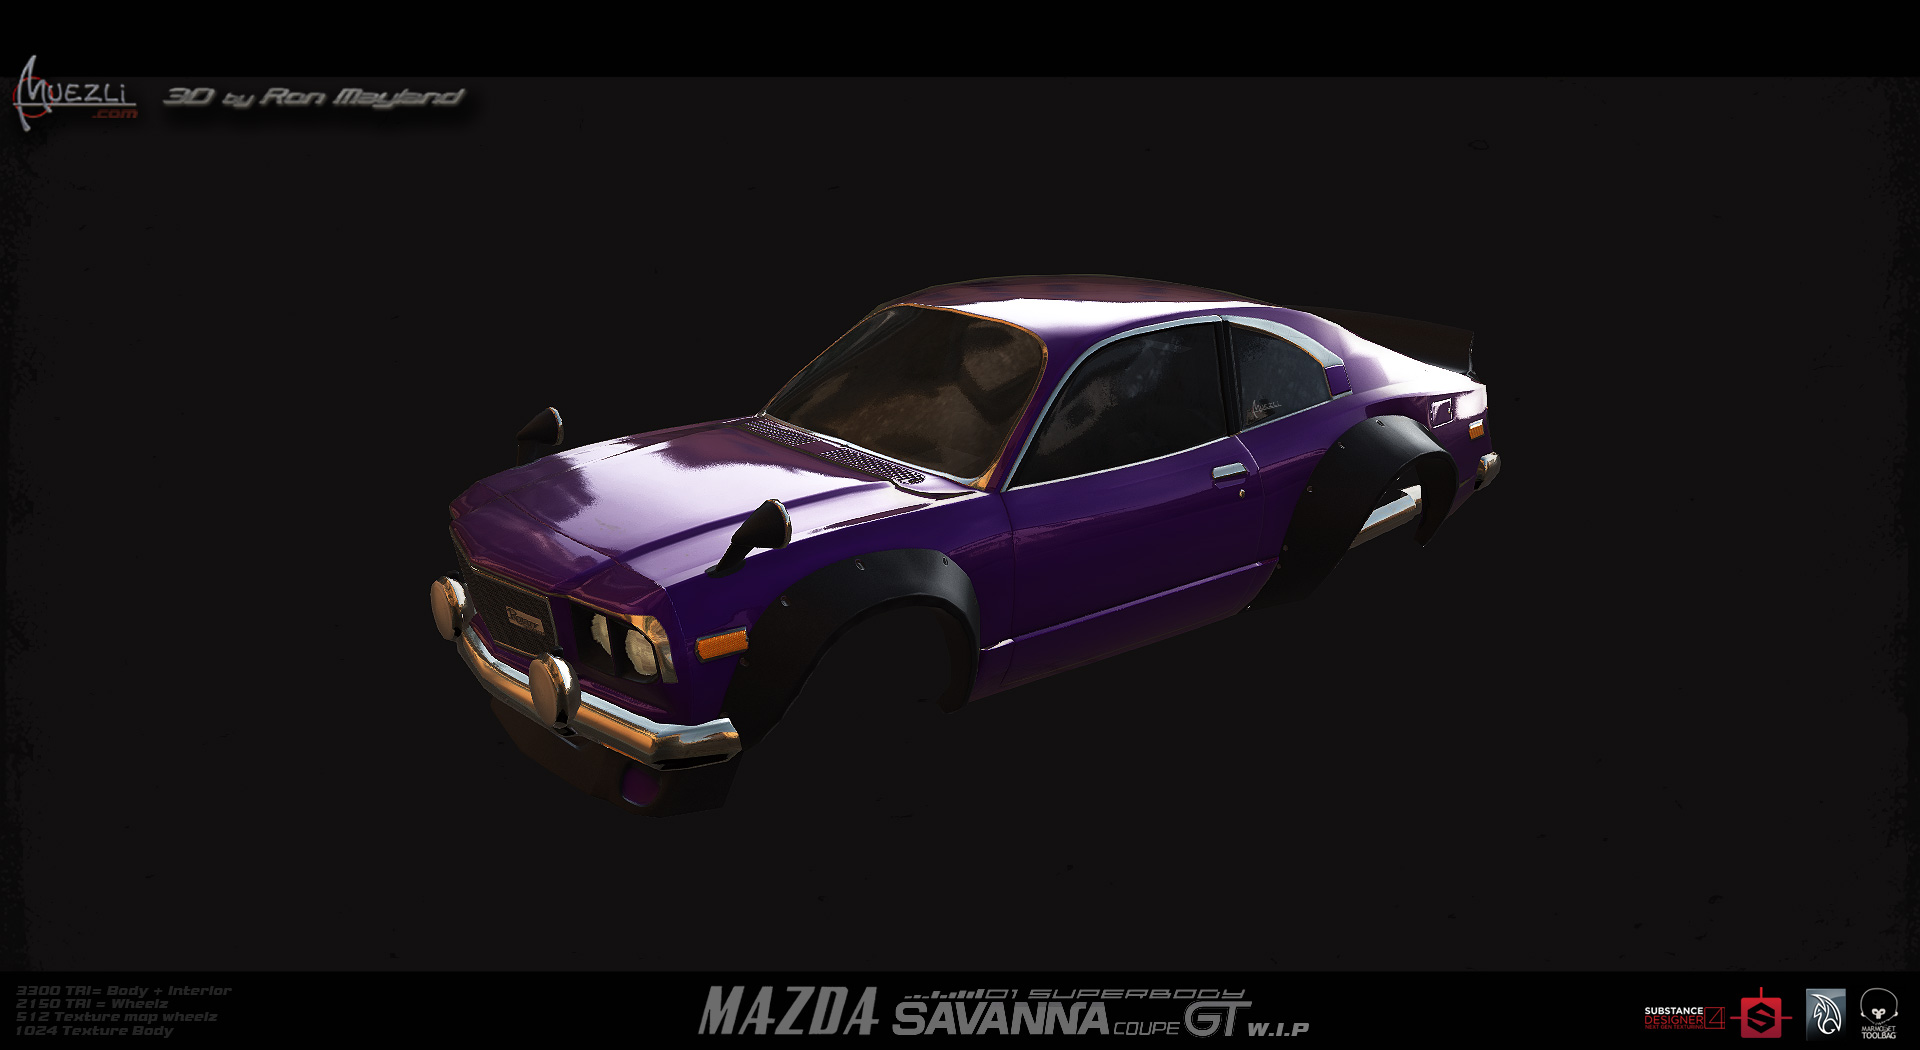 Mazda_gt_WiP by Ron Mayland